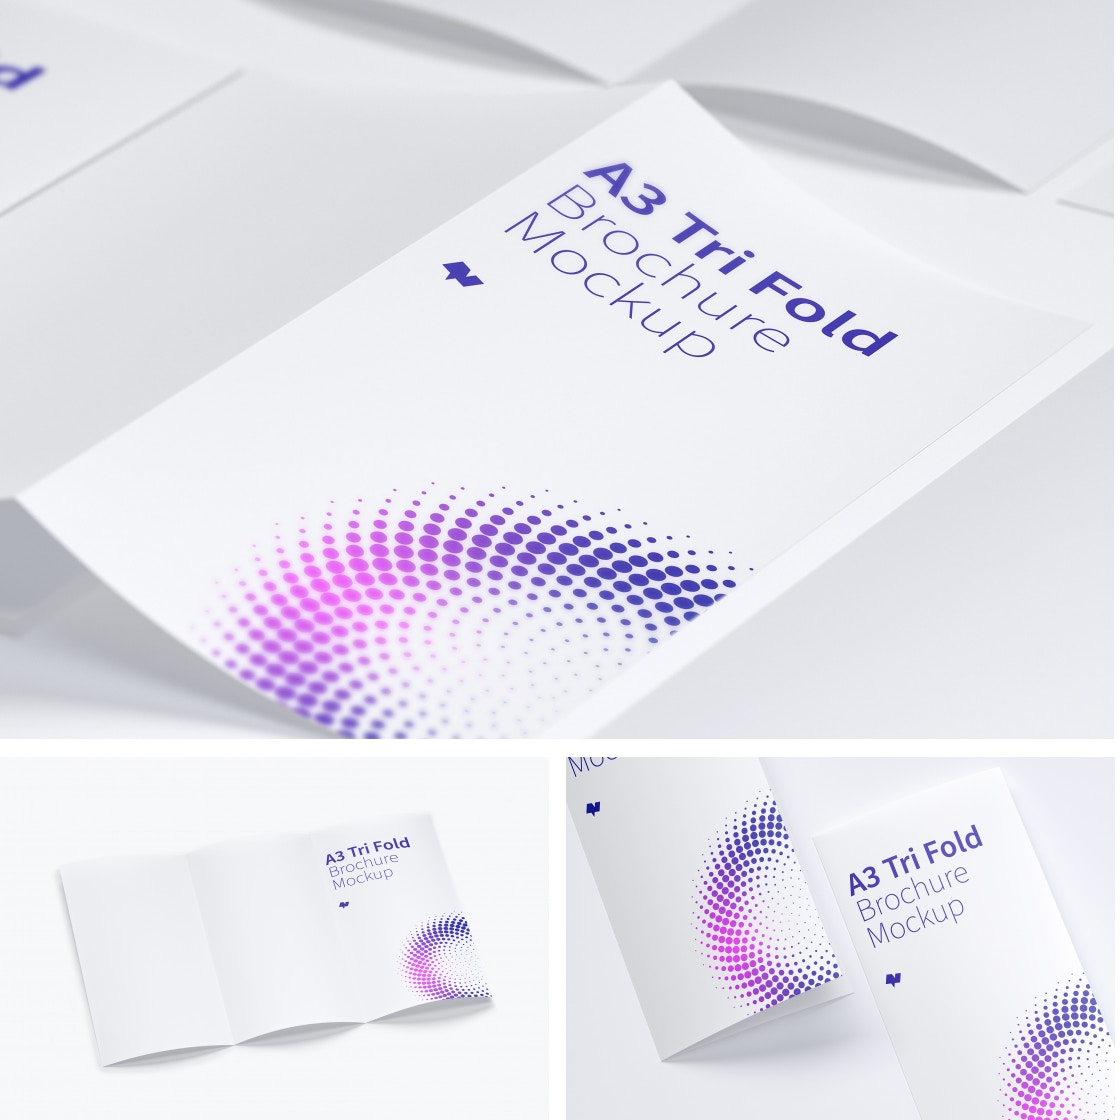 A3 Trifold Brochure Mockups by Original Mockups on Original Mockups